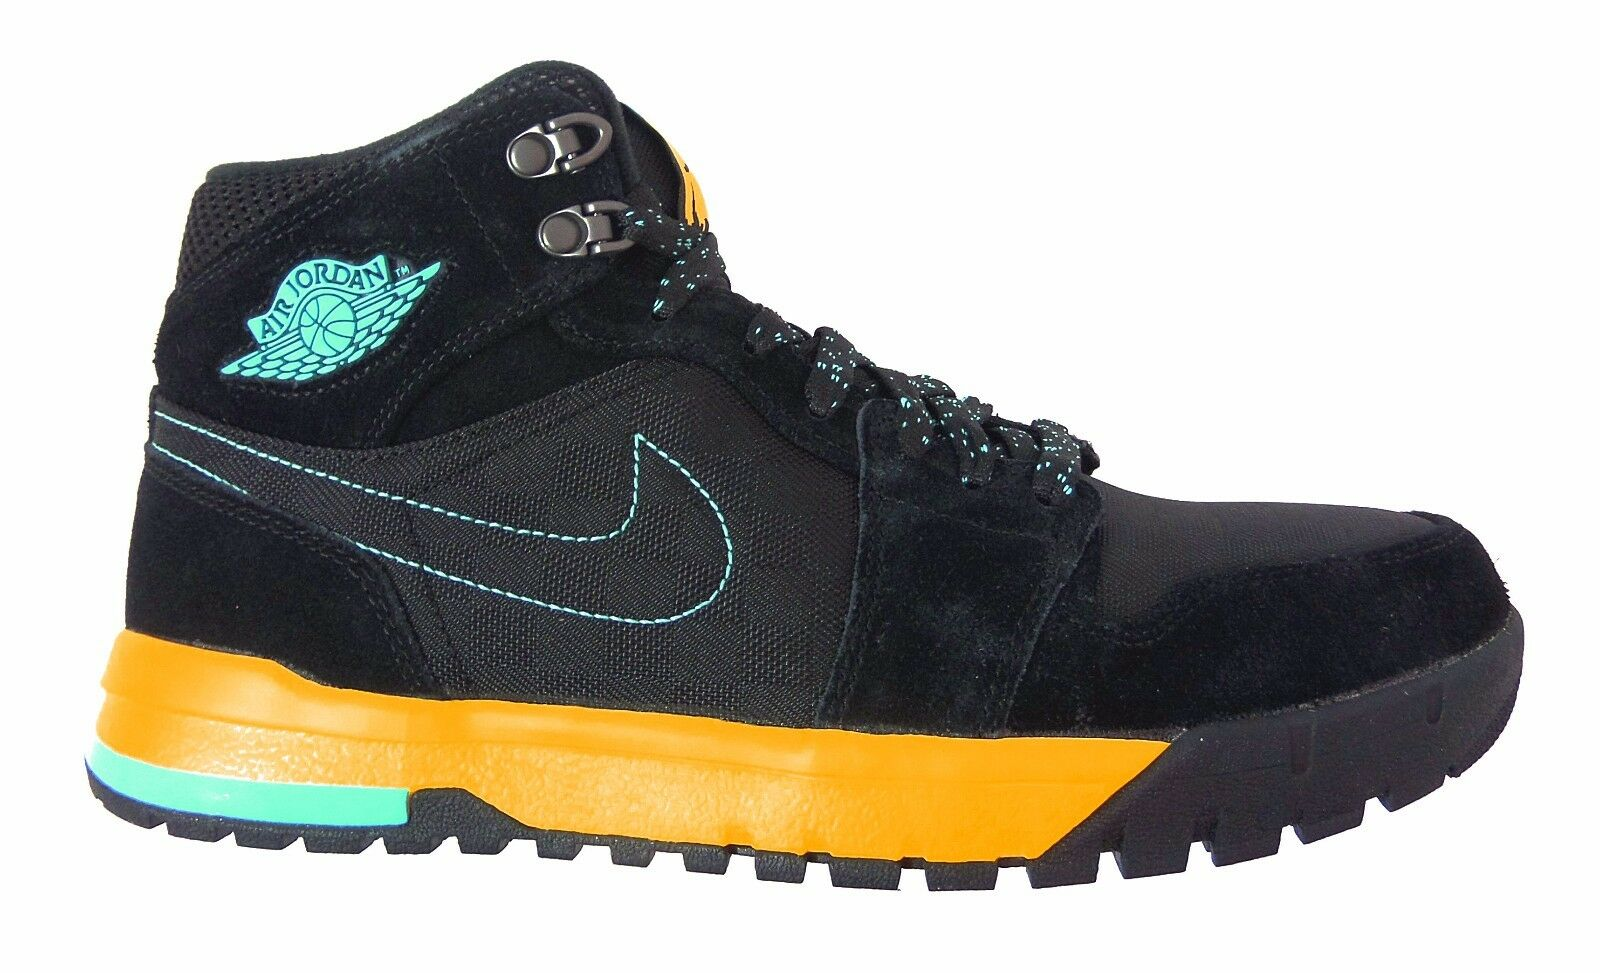 Nike Men's AIR JORDAN 1 TREK Shoes Black/Blue/Maize 616344-089 a3